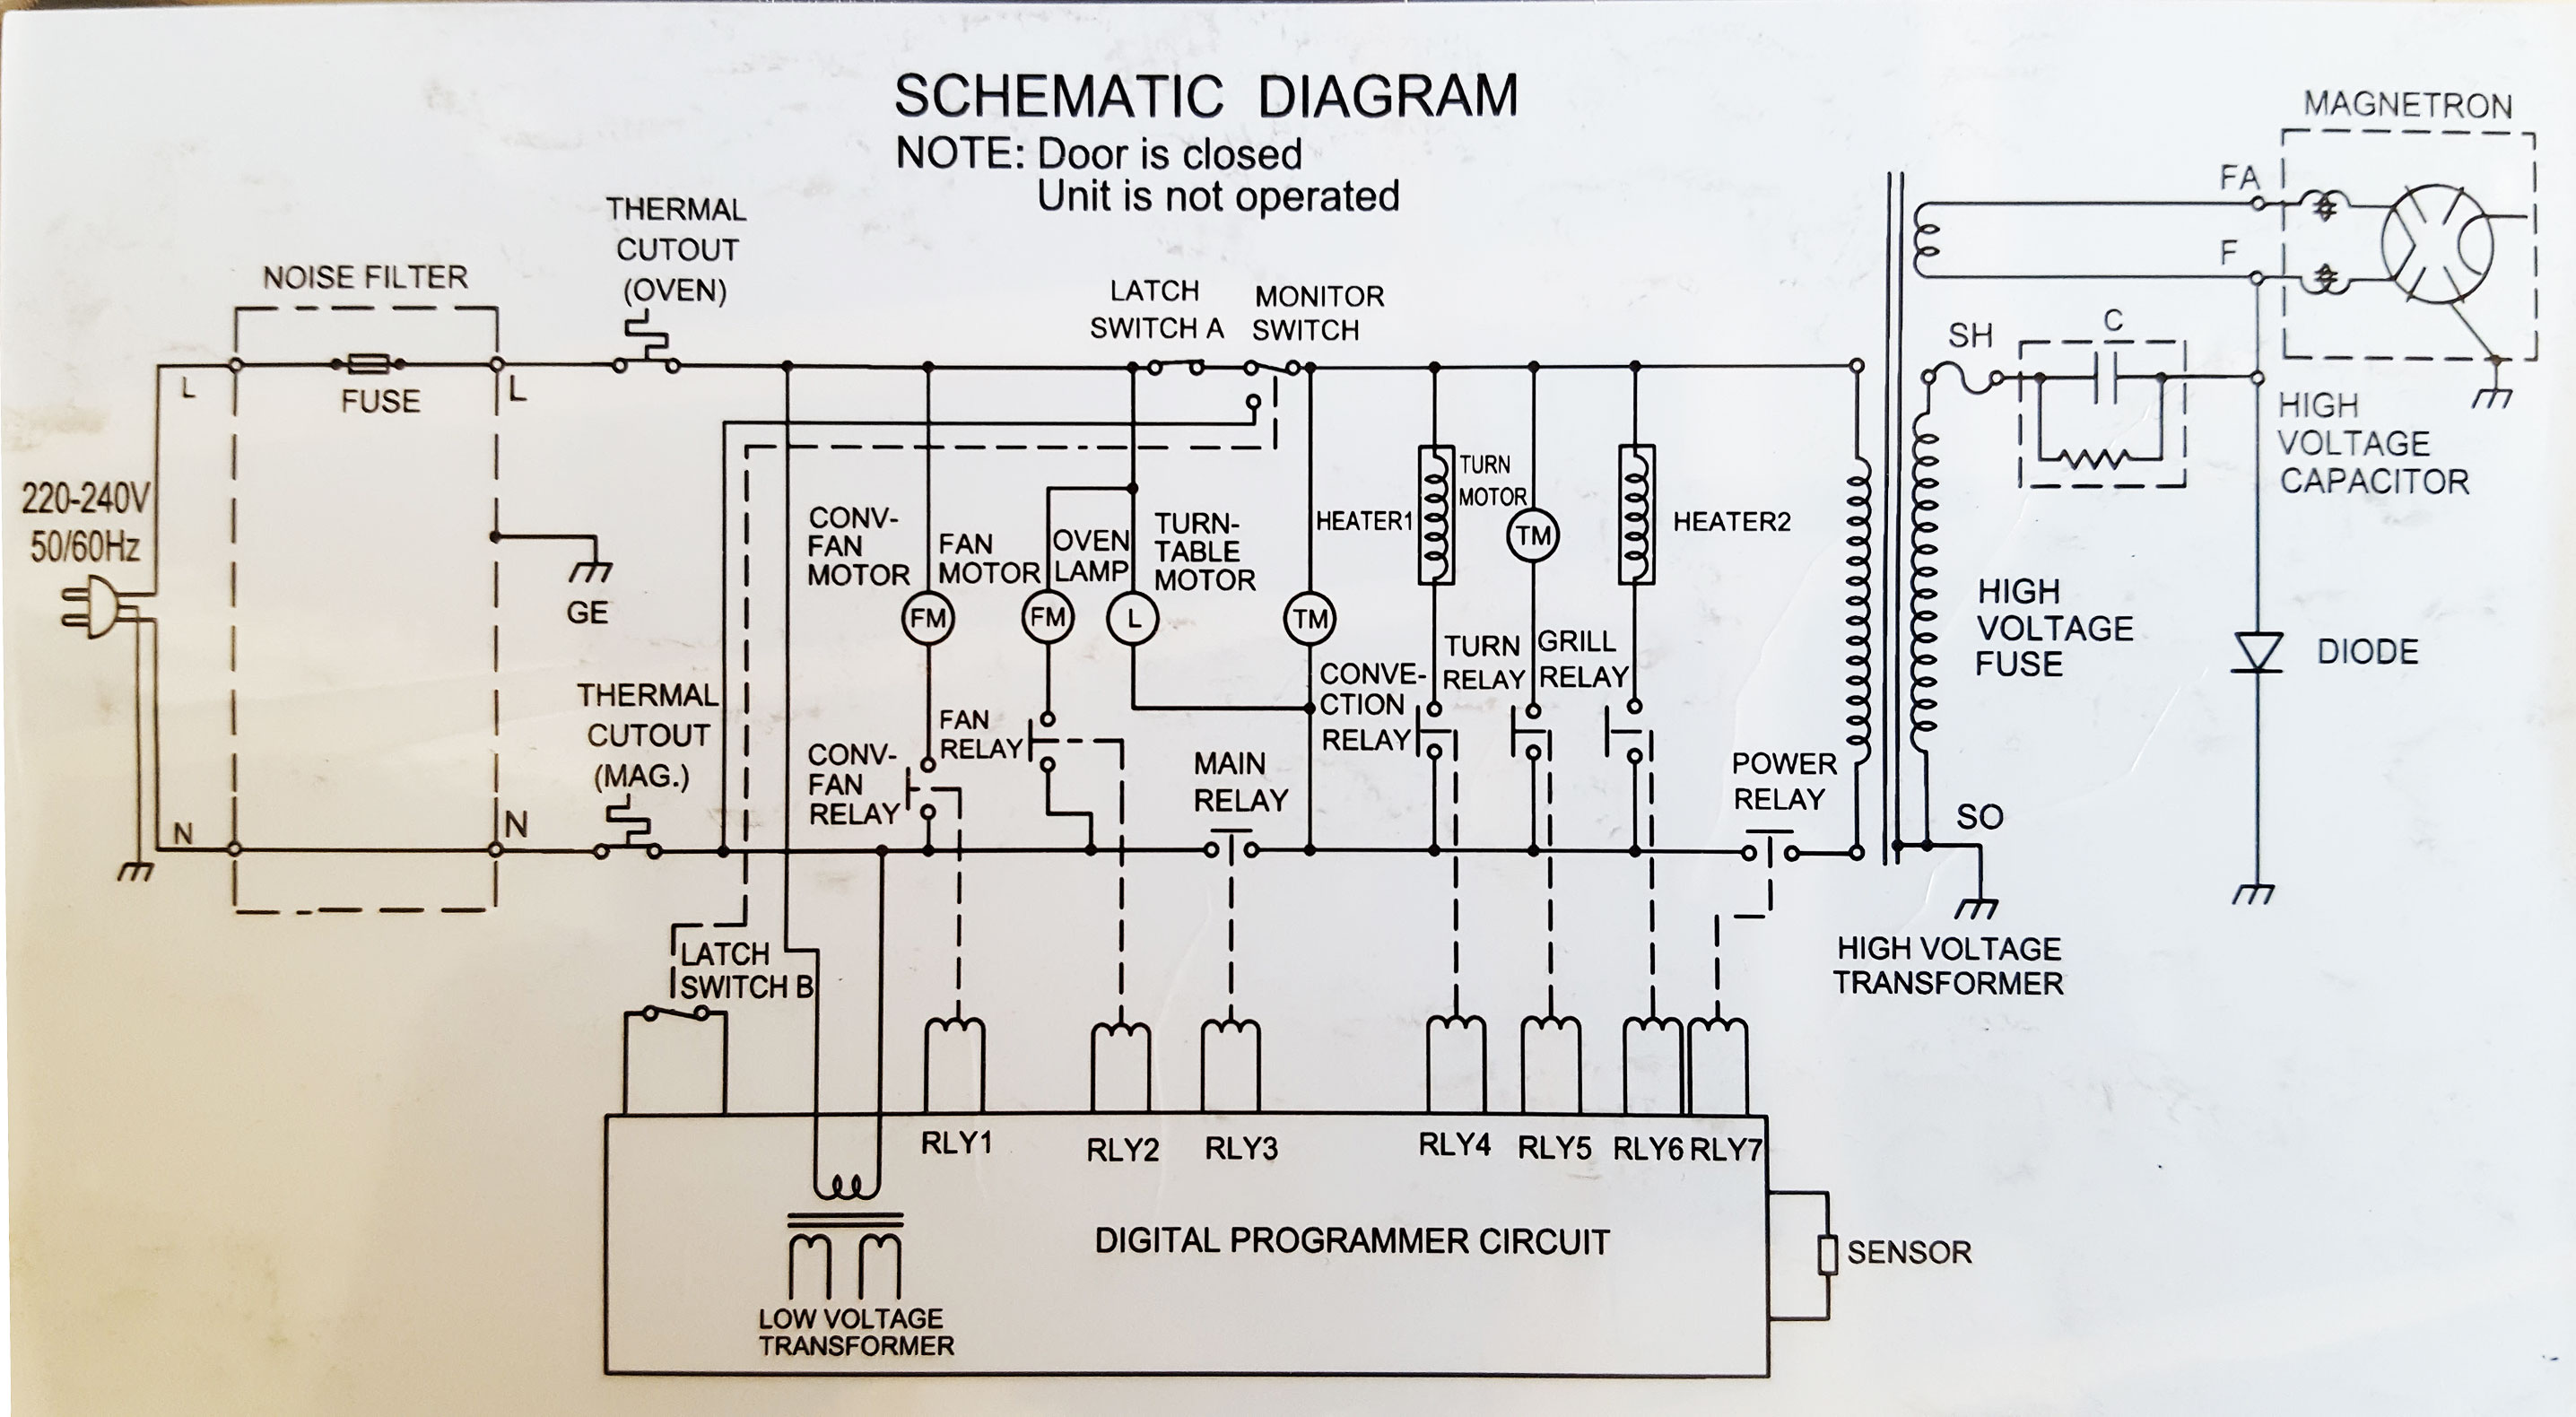 Microwave Oven Drawing At Free For Personal Use Wiring Diagram Smeg 2872x1580 Pcb Circuit Is Blown Up